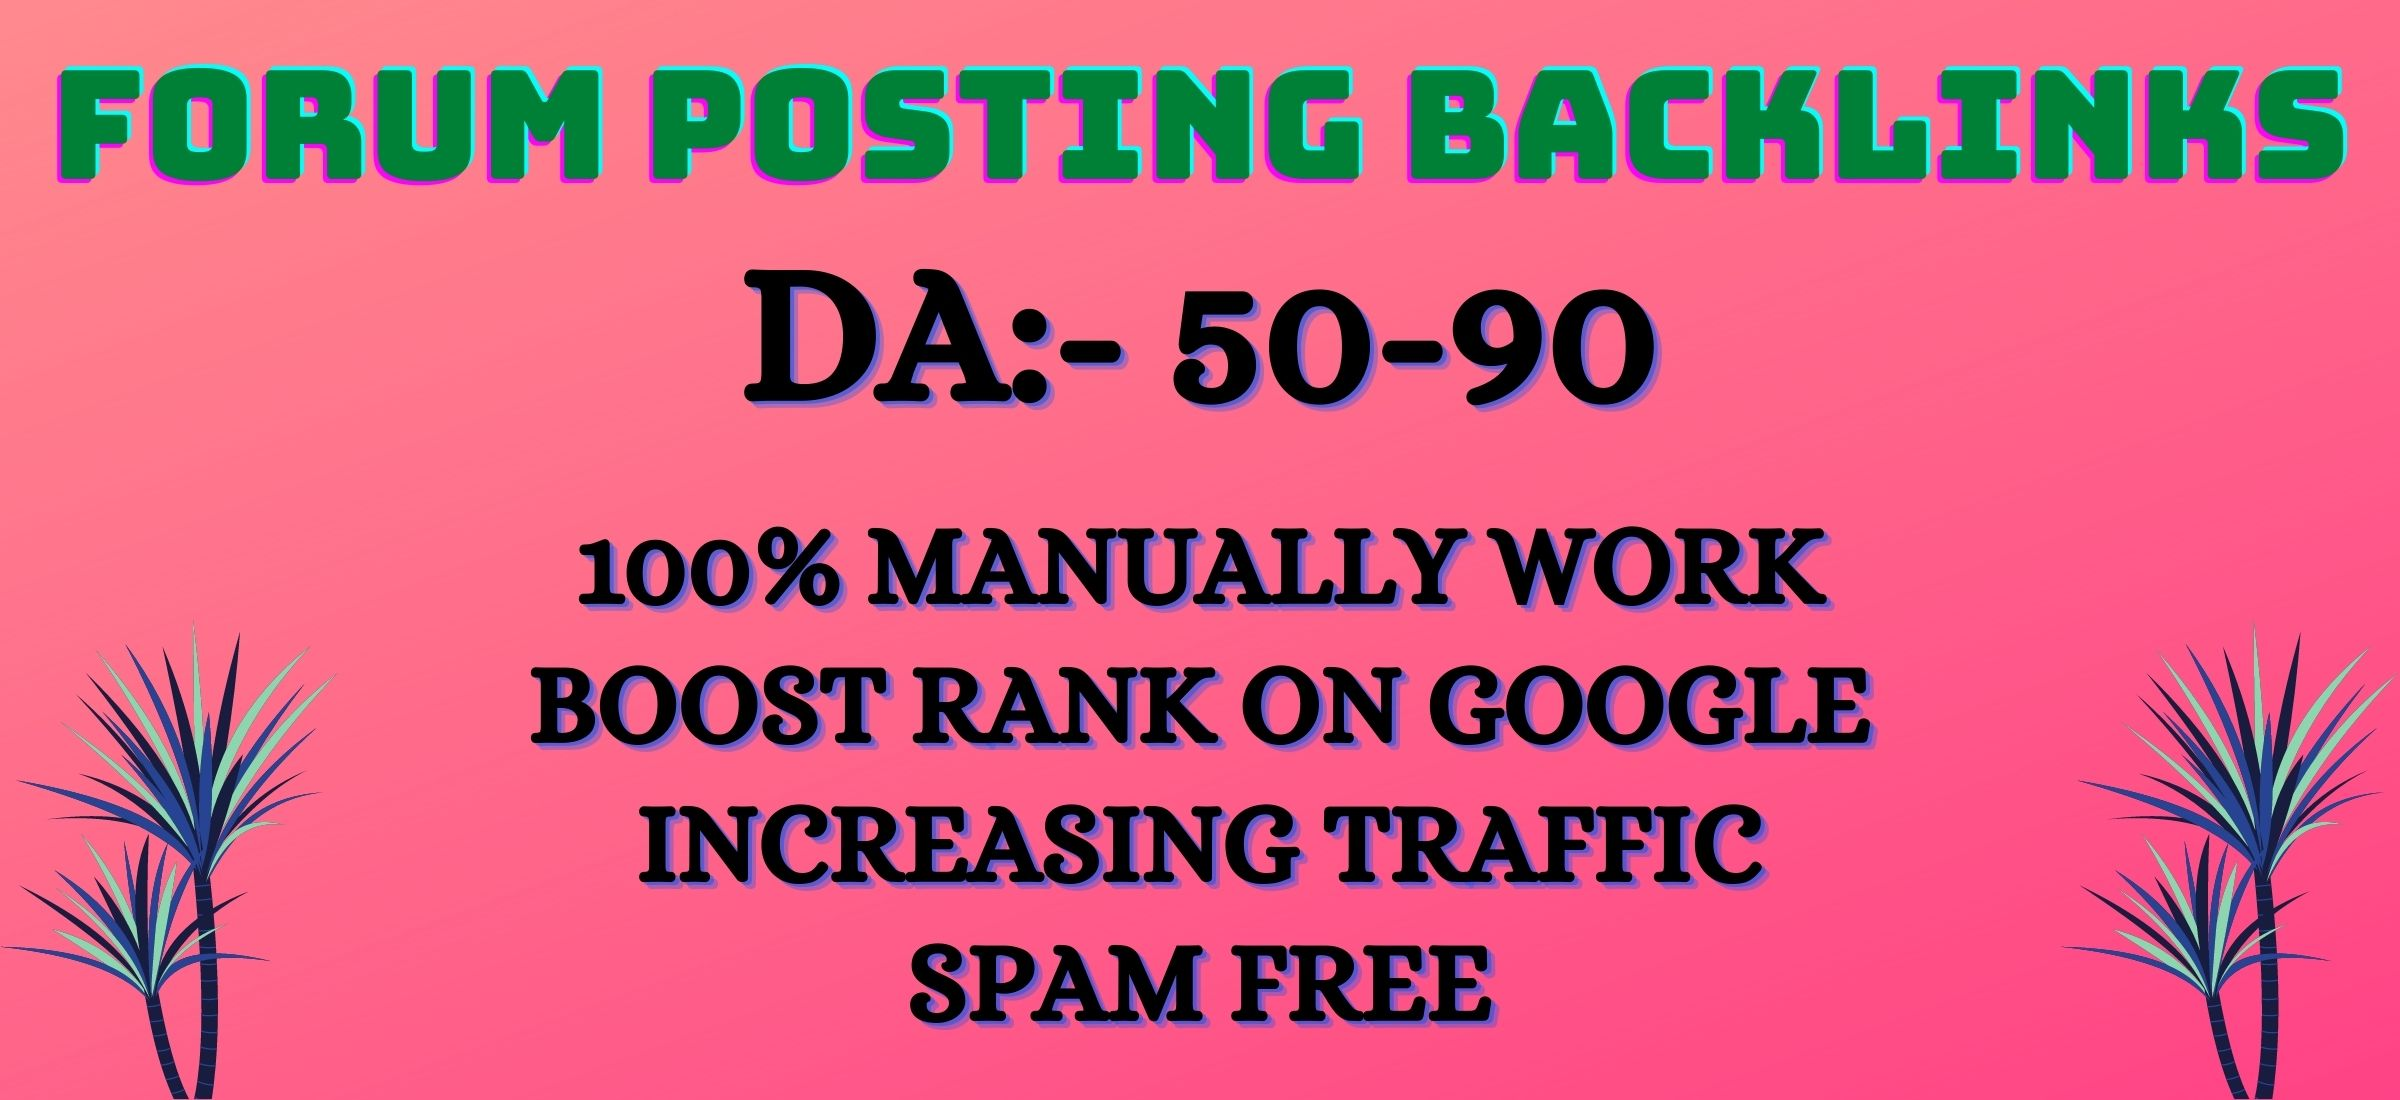 Manually create 30 forum posts backlink on high DA-50 plus sites